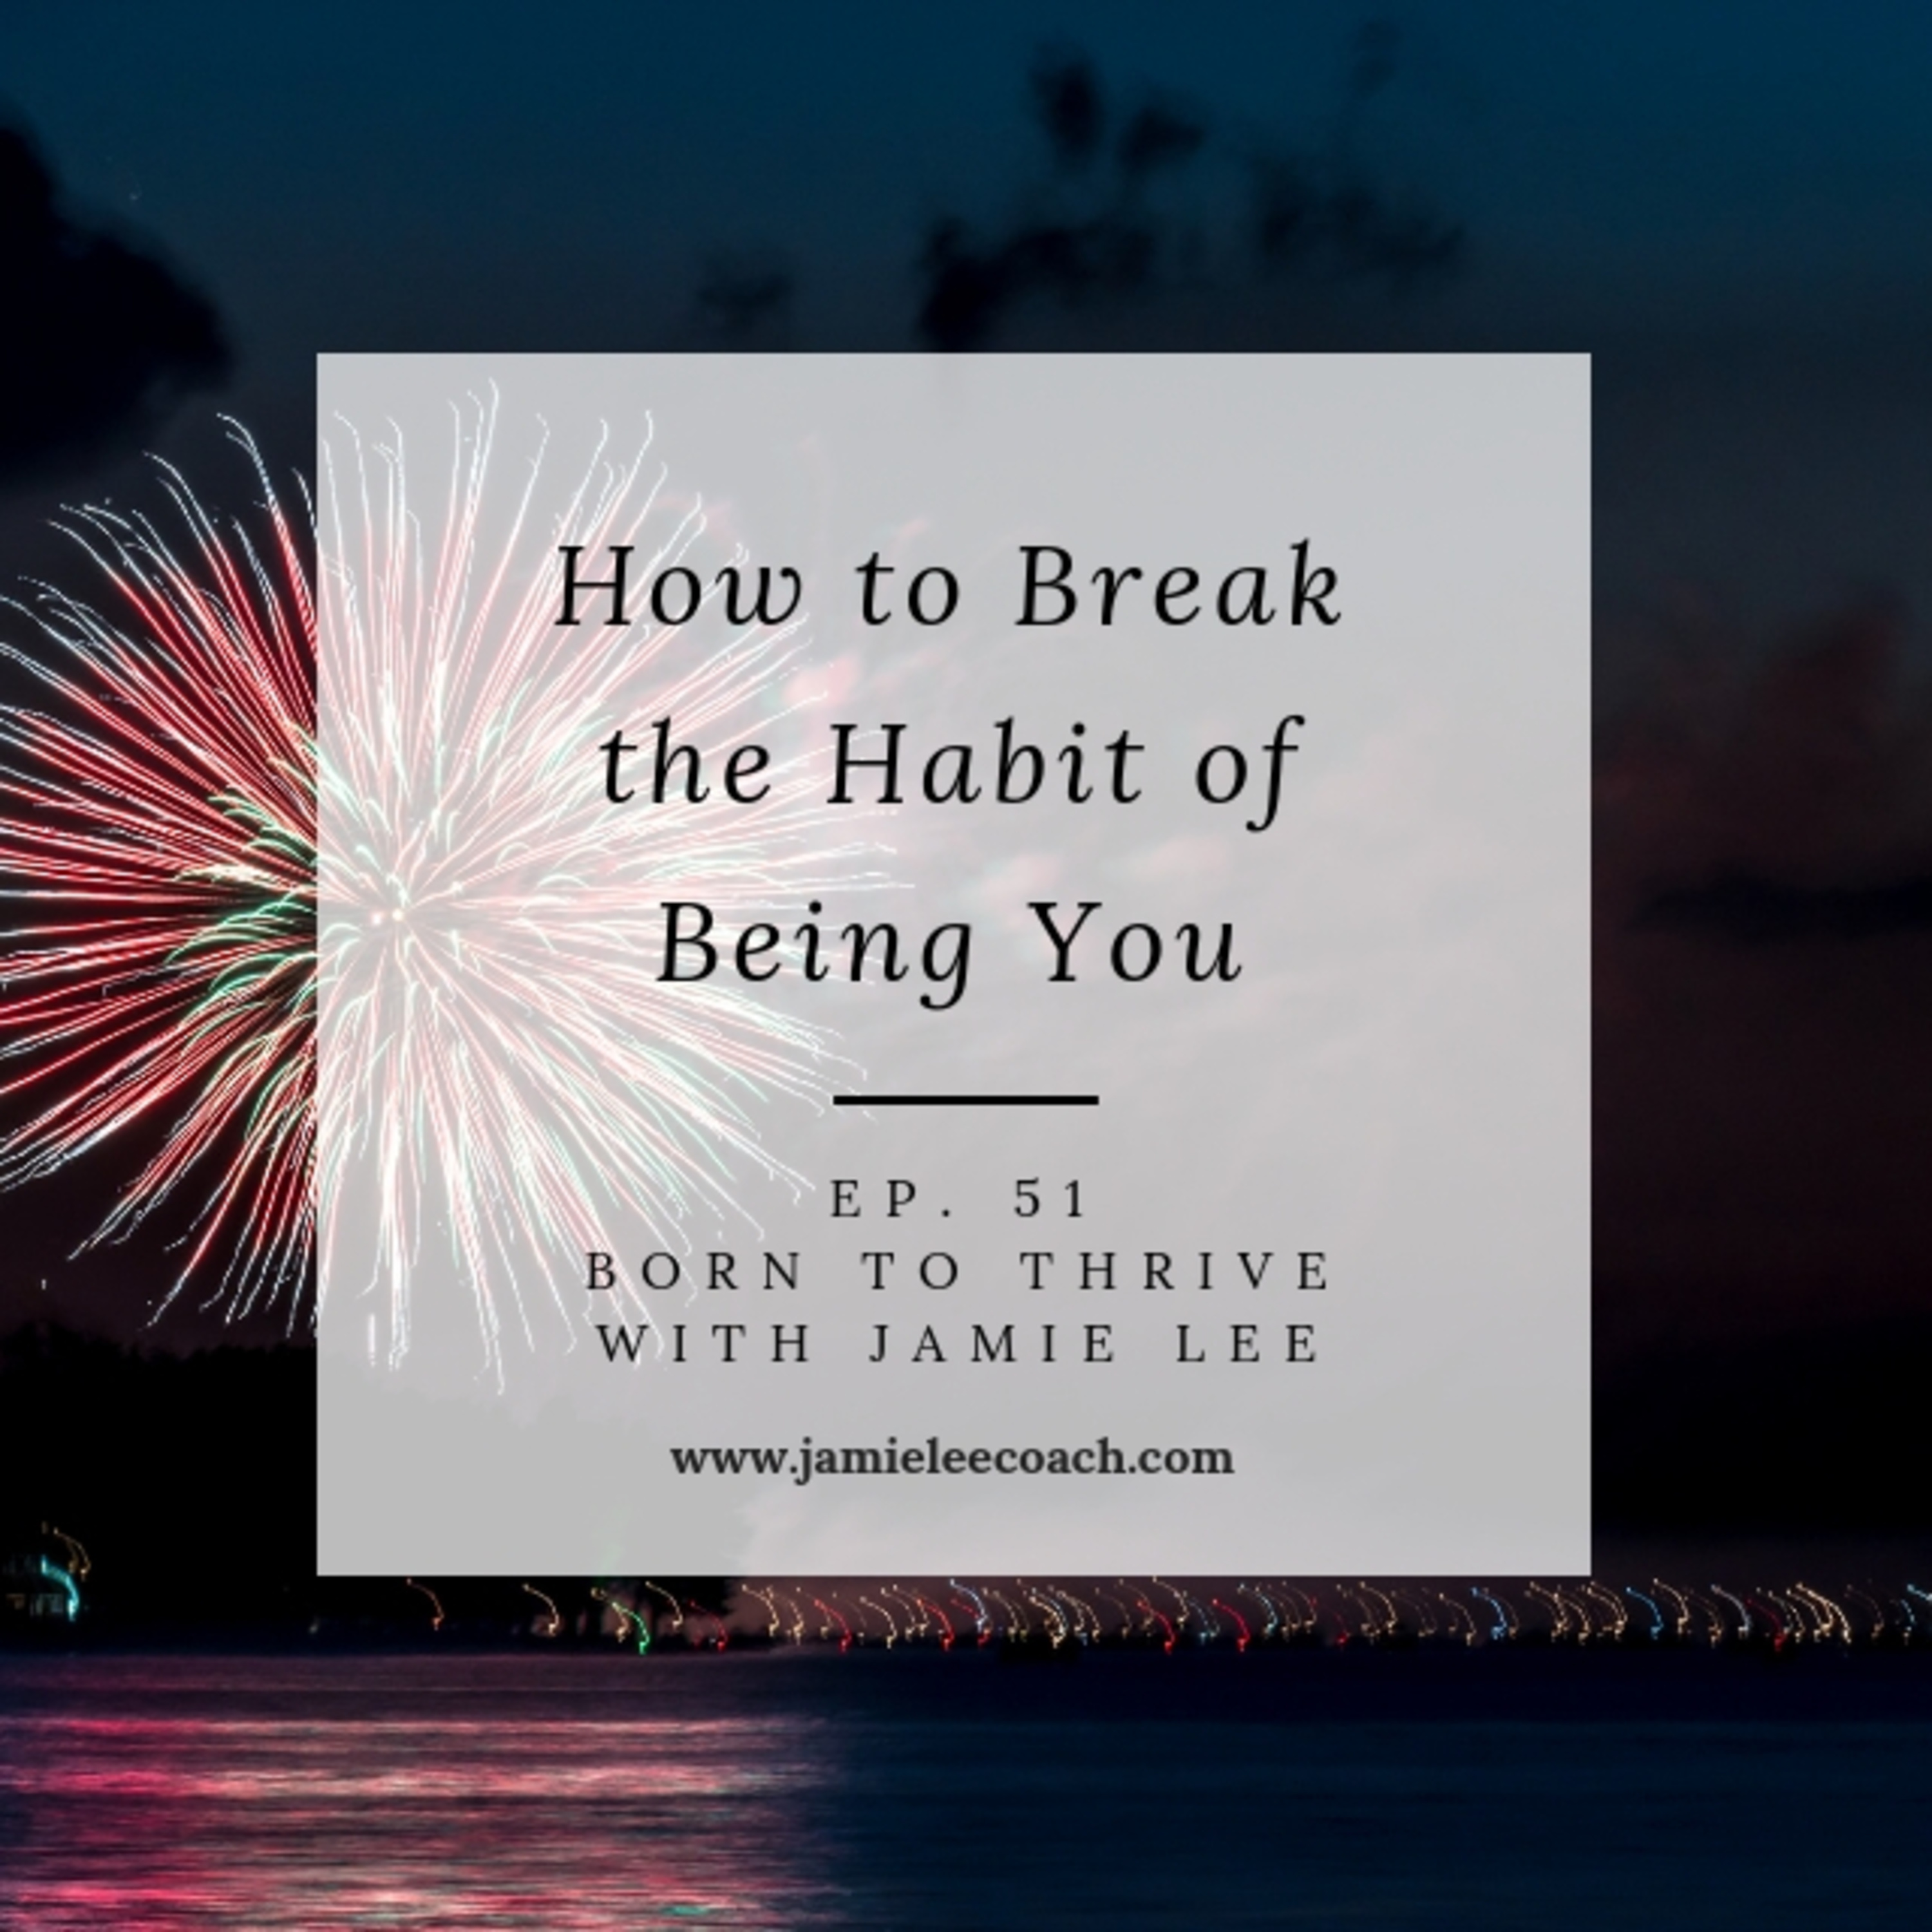 Ep. 51 How to Break The Habit of Being You